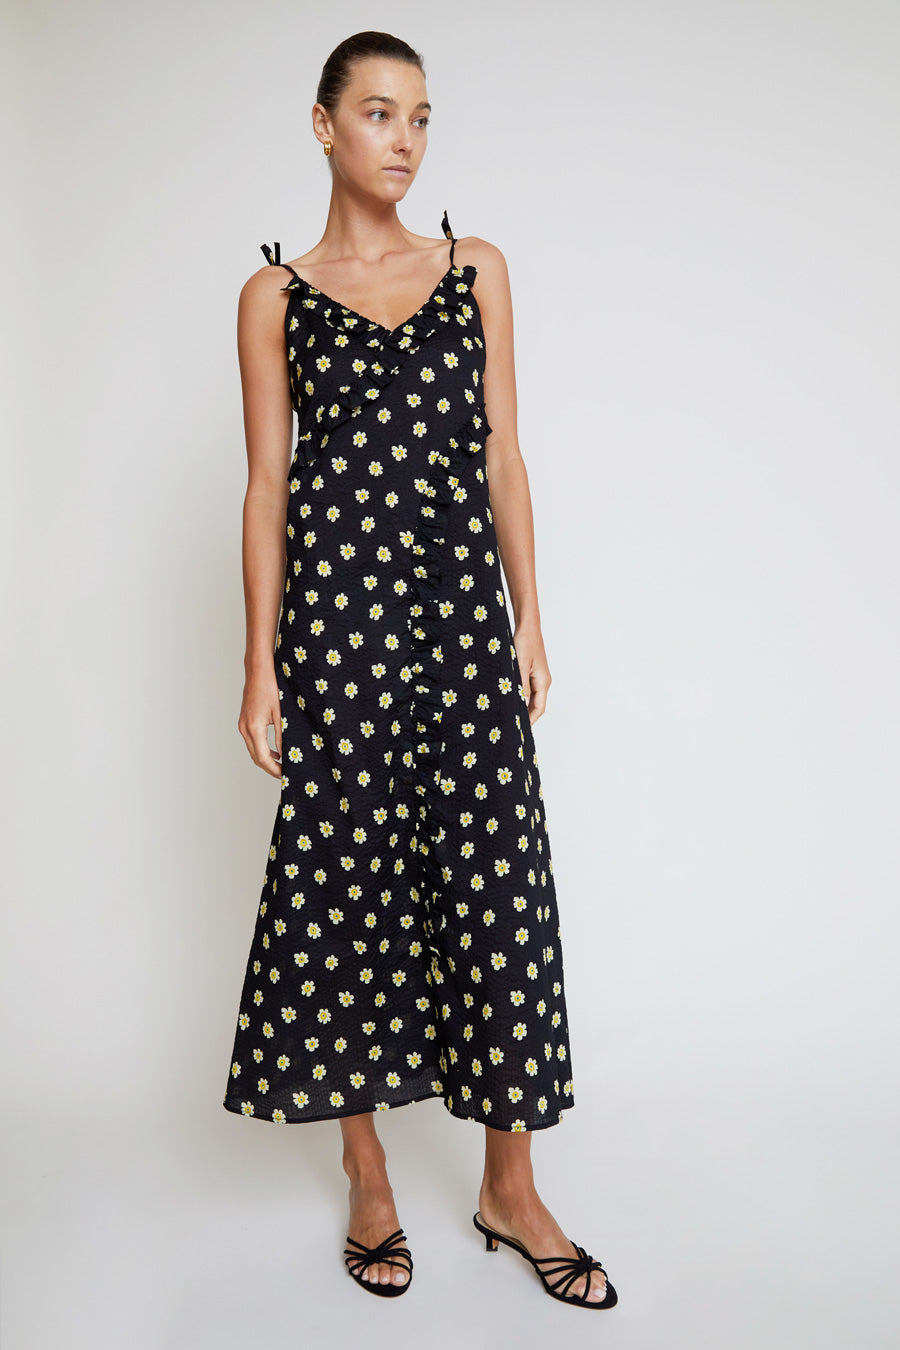 Belize Kim Frill Dress in Black Daisy